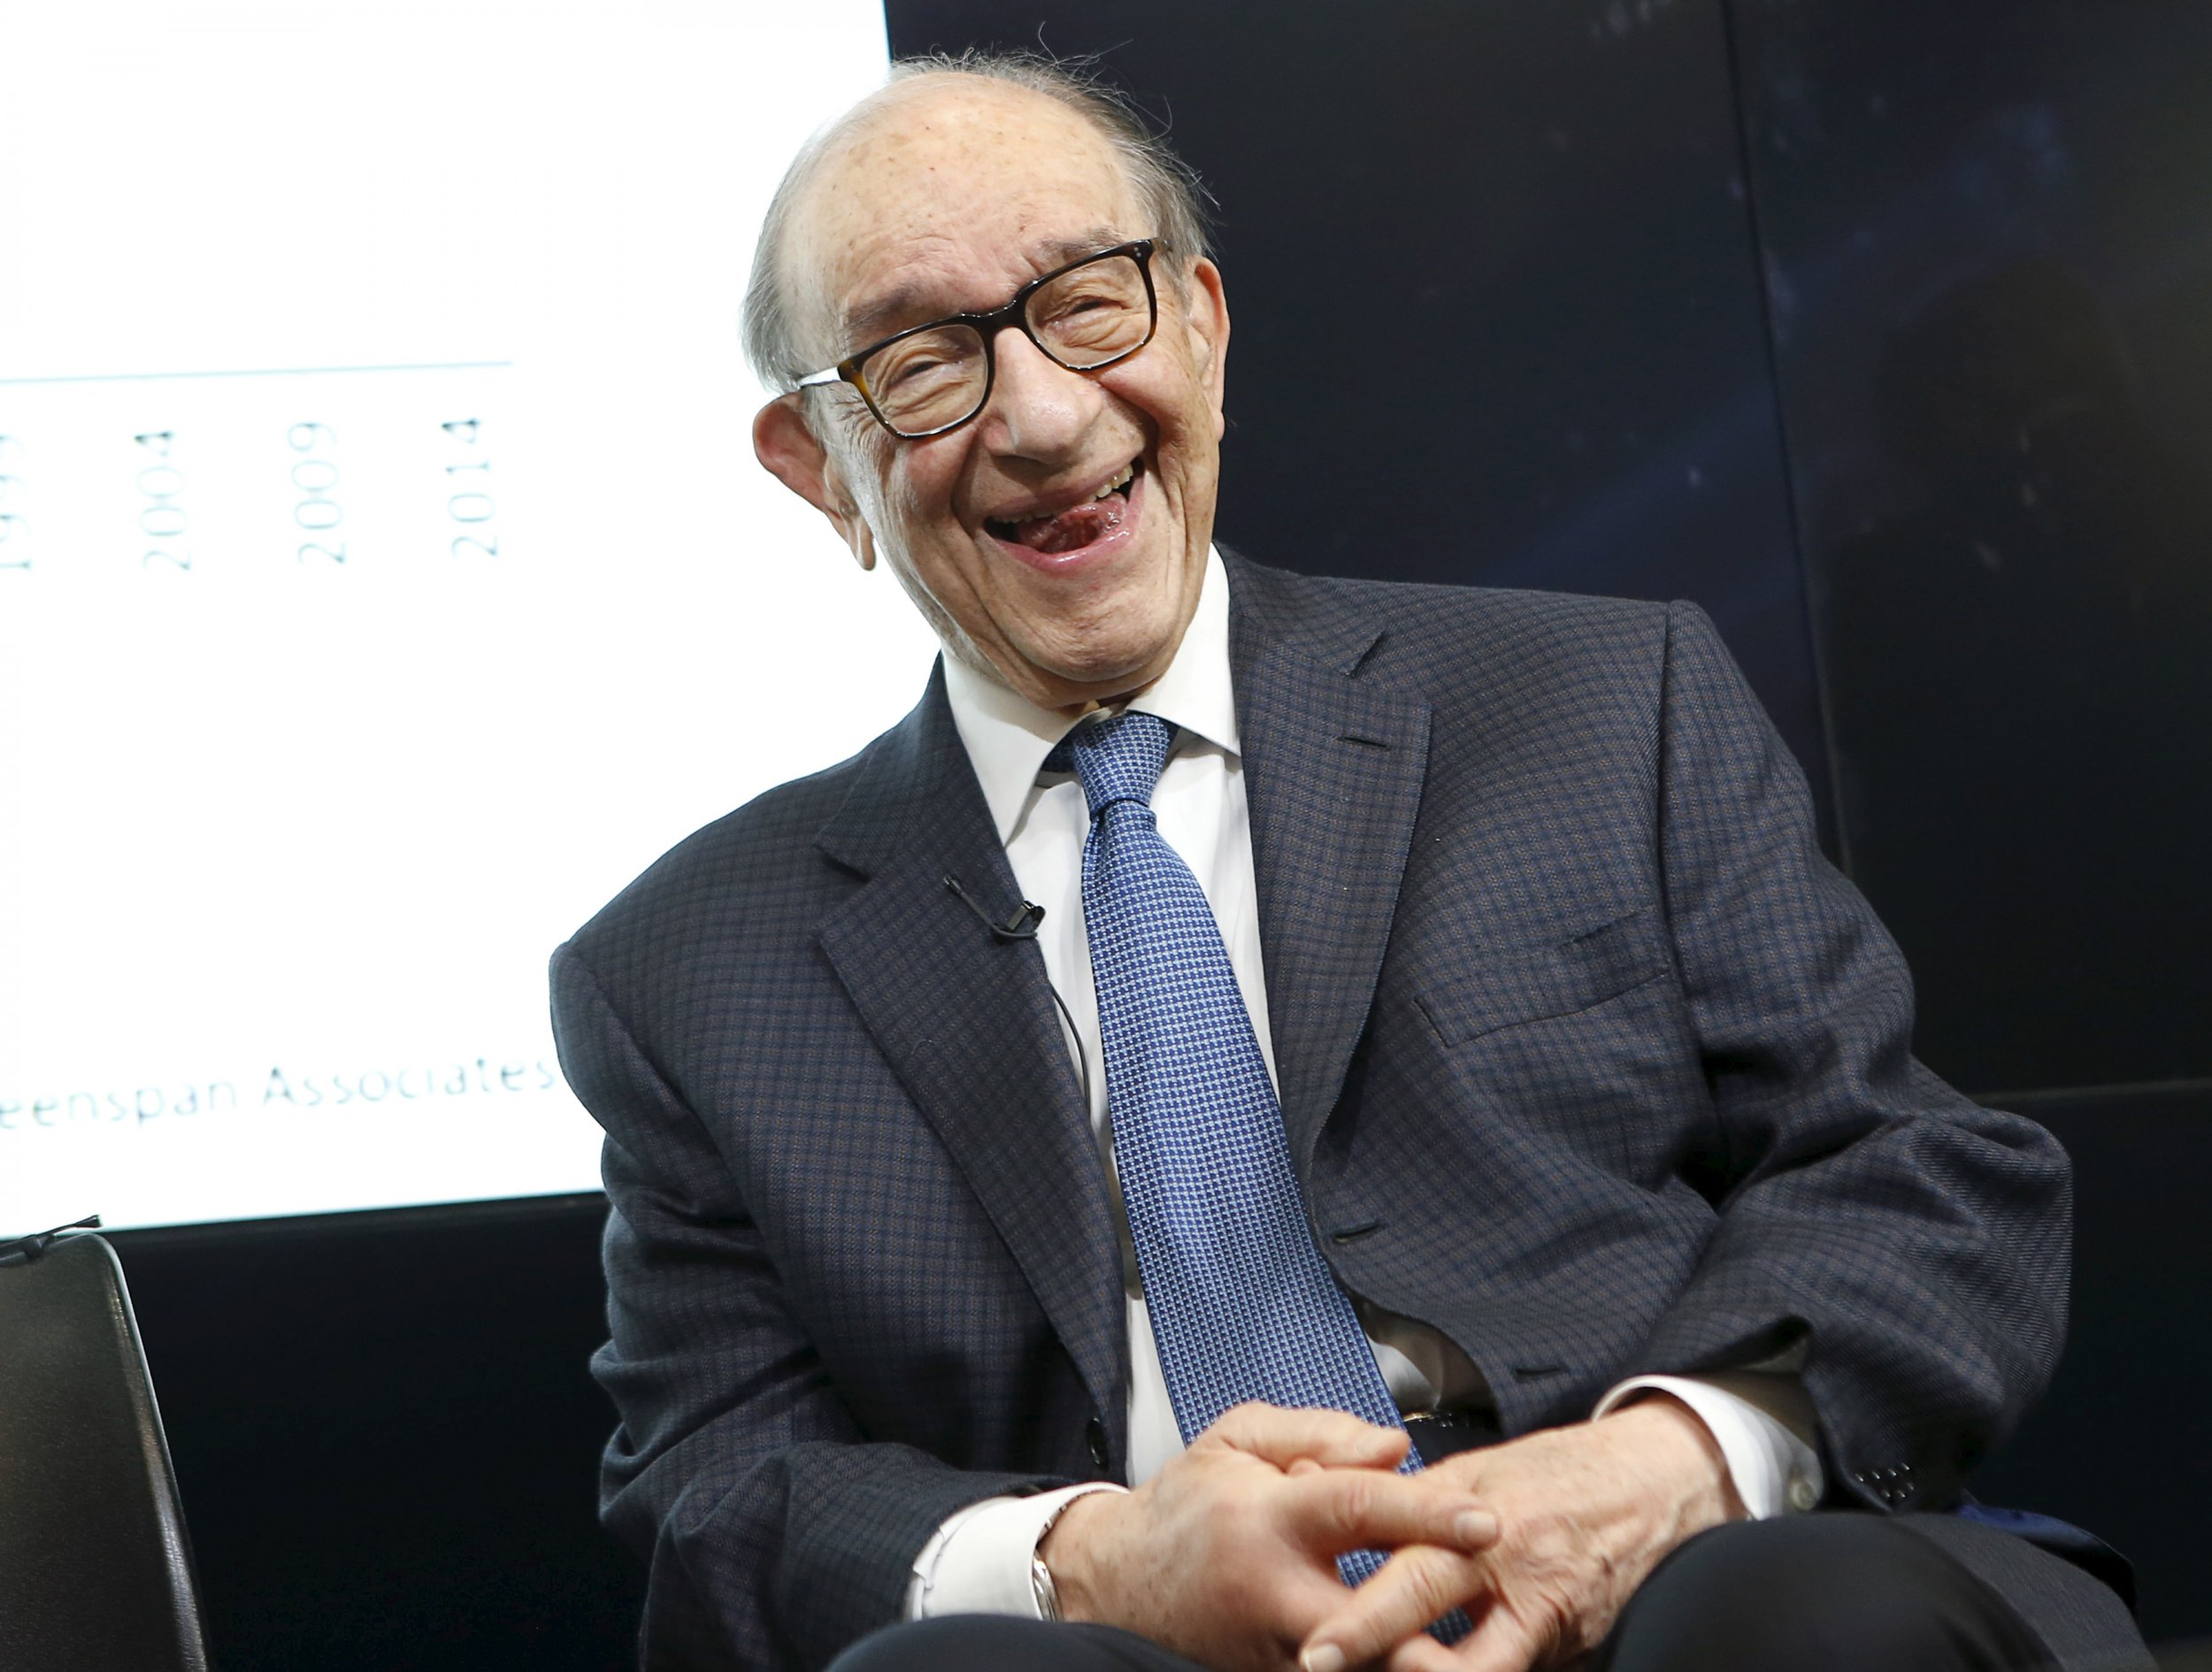 alan greenspan essay We have got a great essay template, discussing the life of alan greenspan feel free to use the following sample to write the best paper on your own.